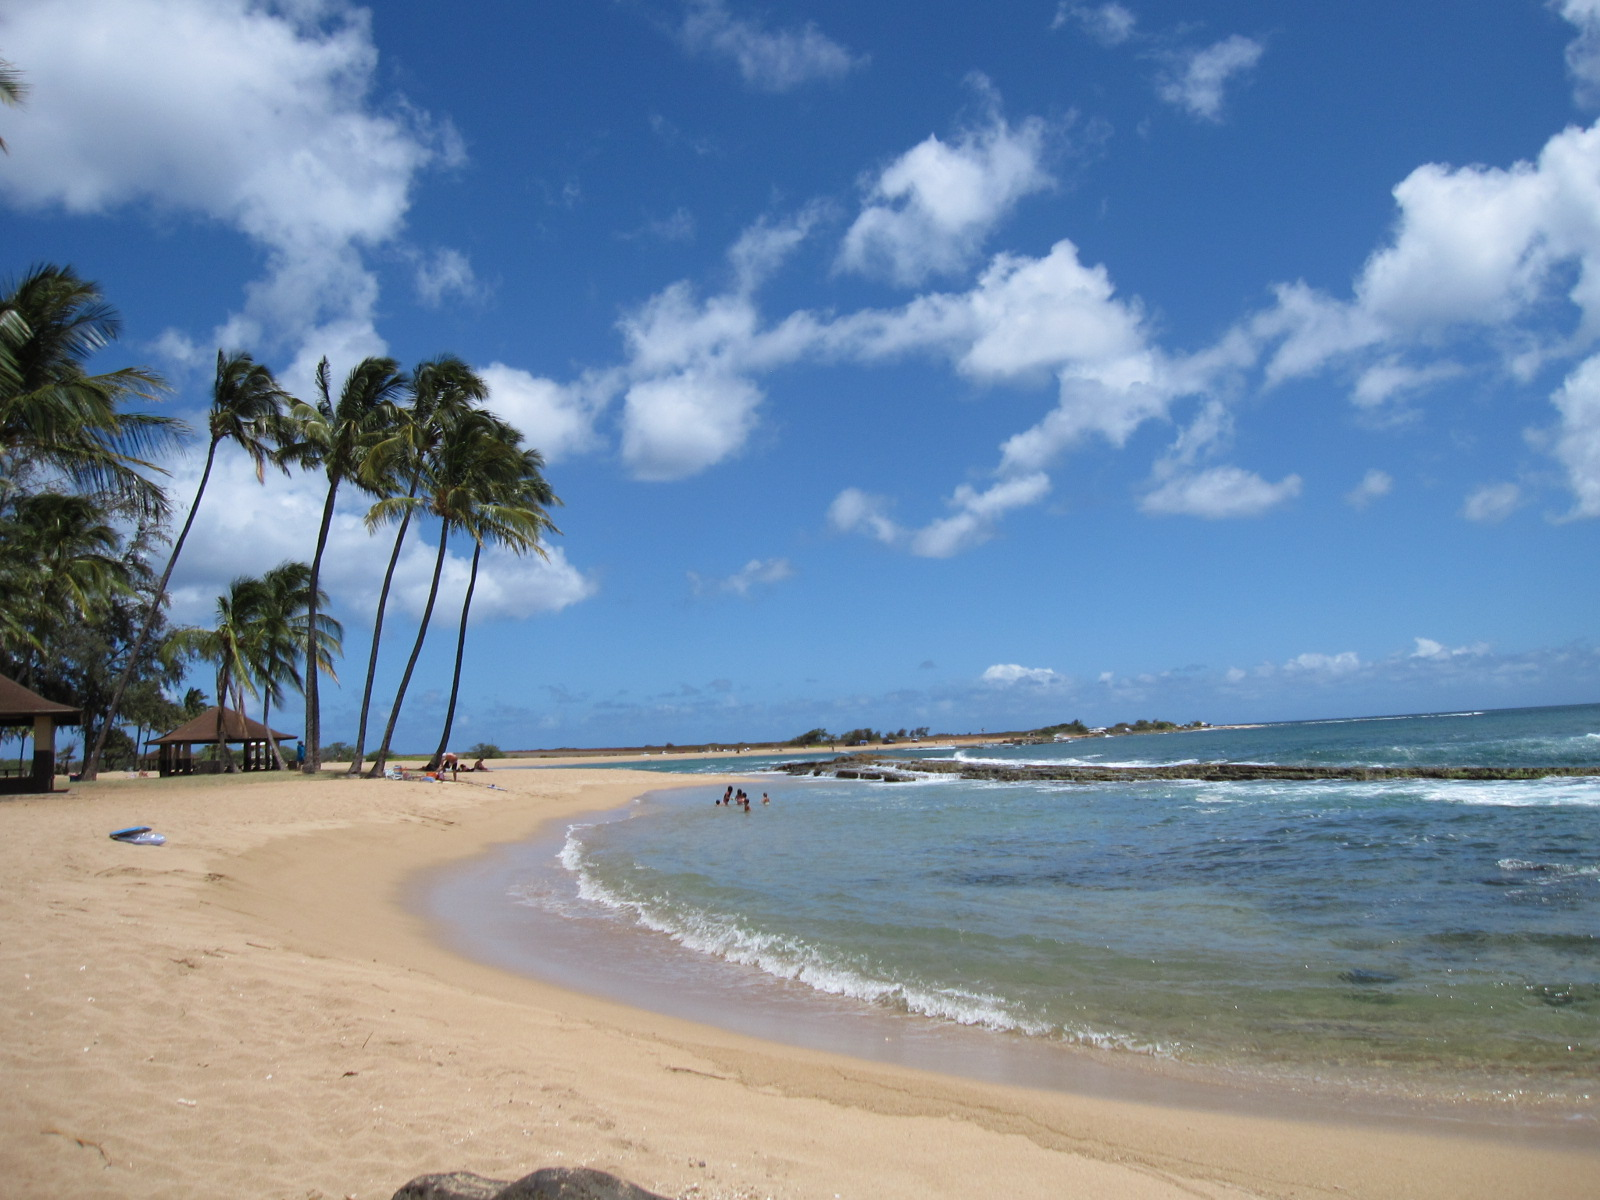 walking on the beach, salt pond kauai, jamie friedman, #30daysofjoy